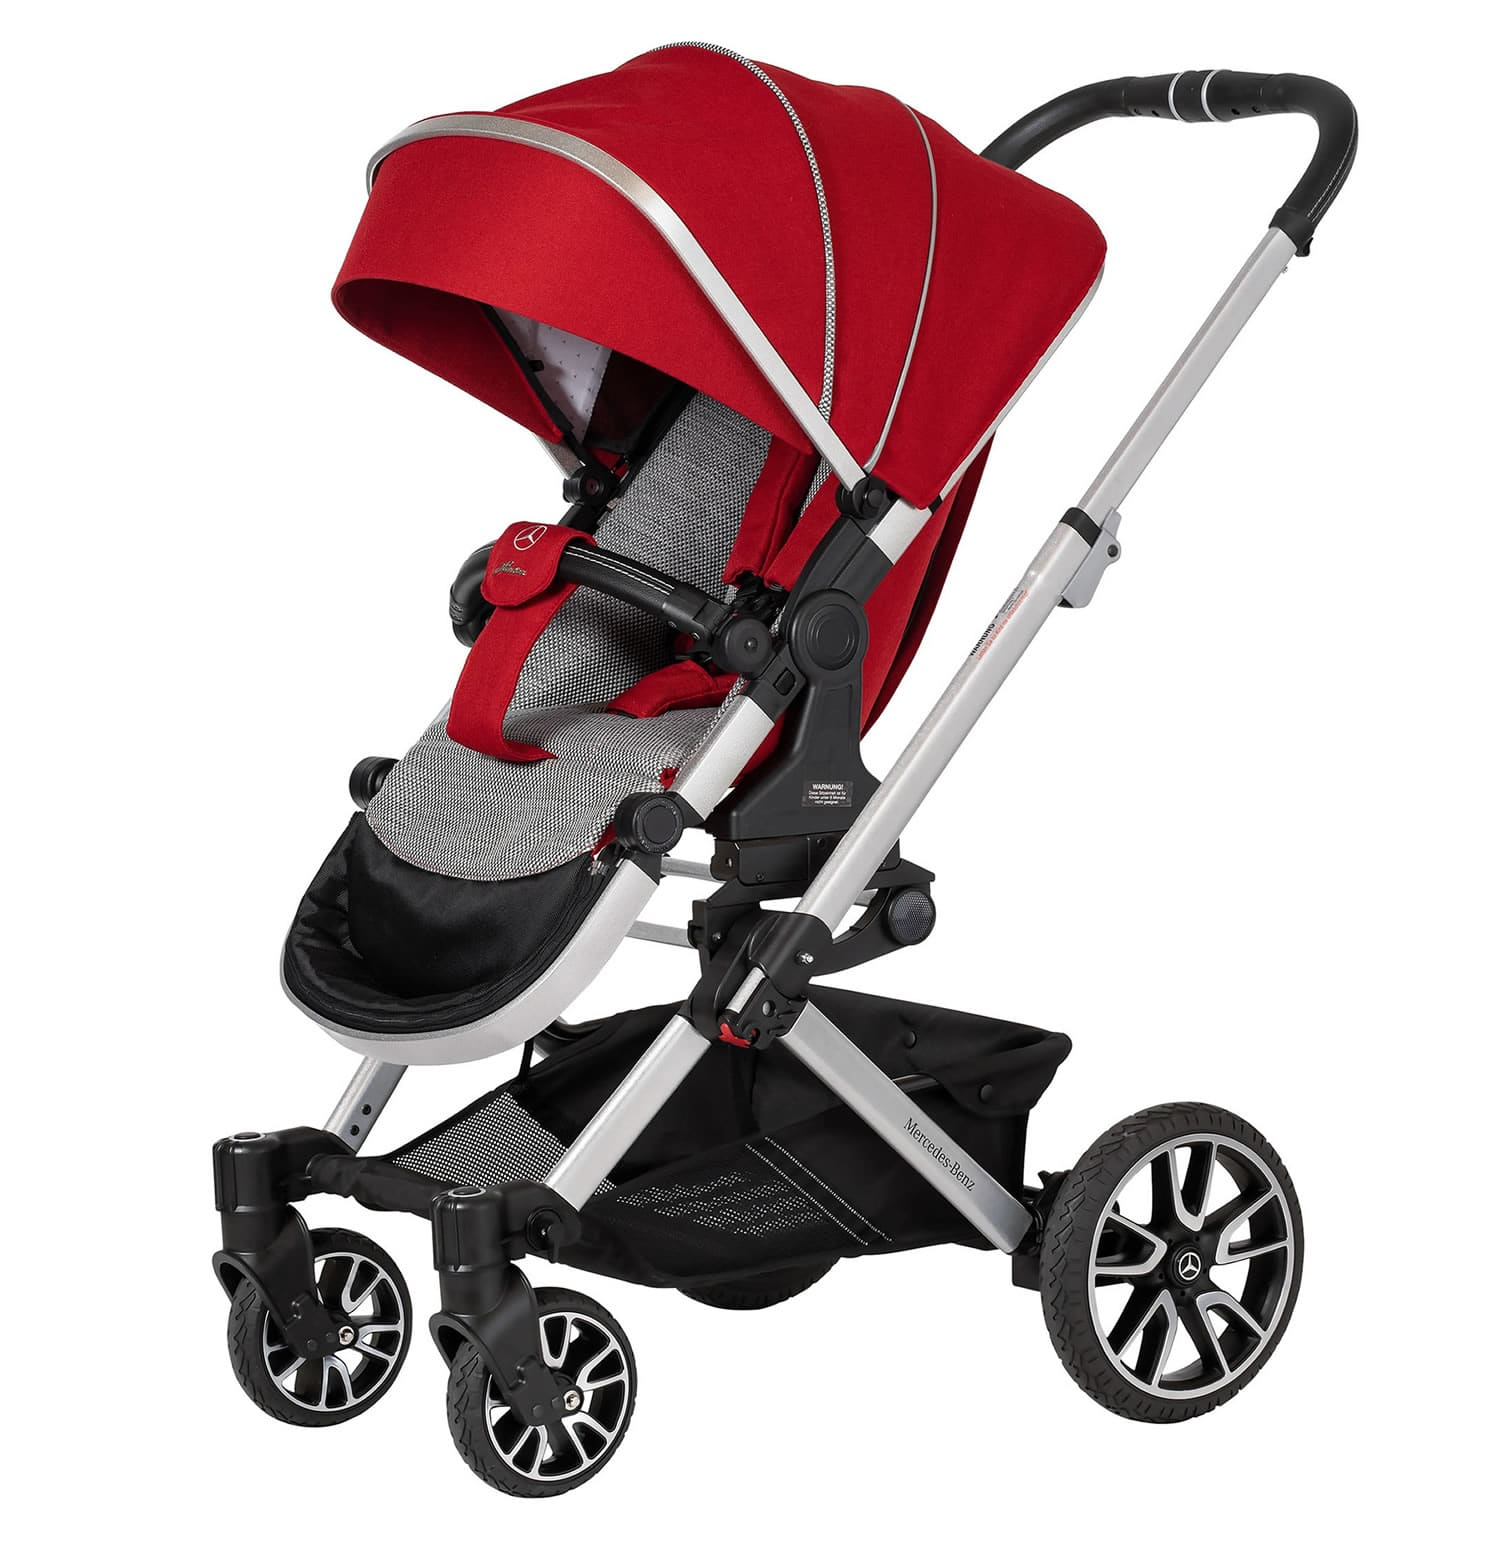 Hartan Mercedes-Benz stroller in Hyacinth